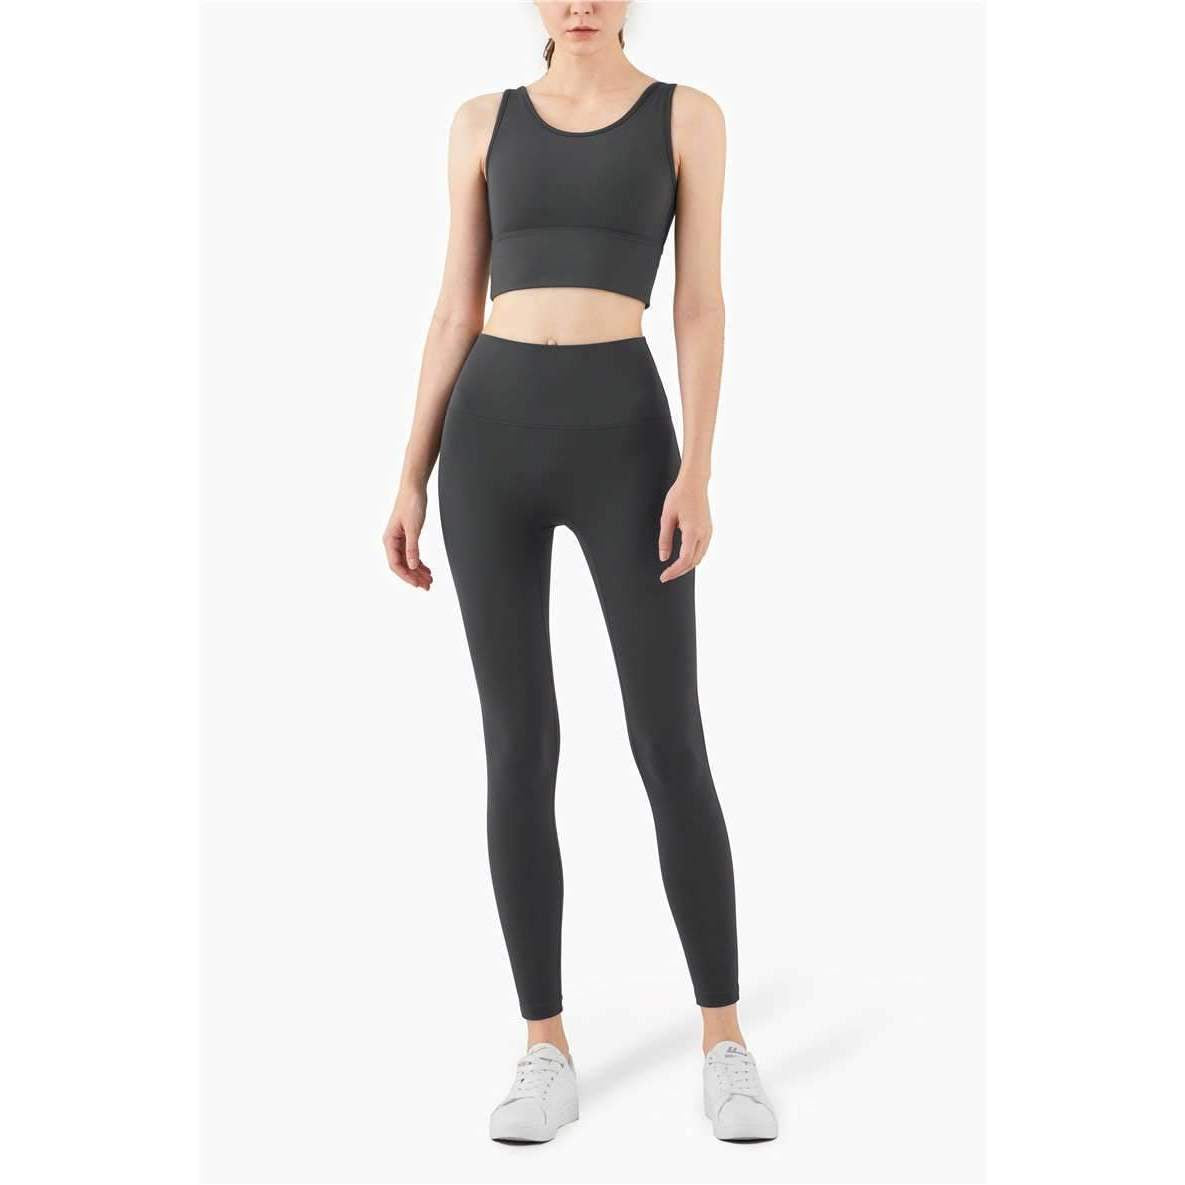 Mend VEST-TYPE High Impact Fitness Crop - Graphite Grey